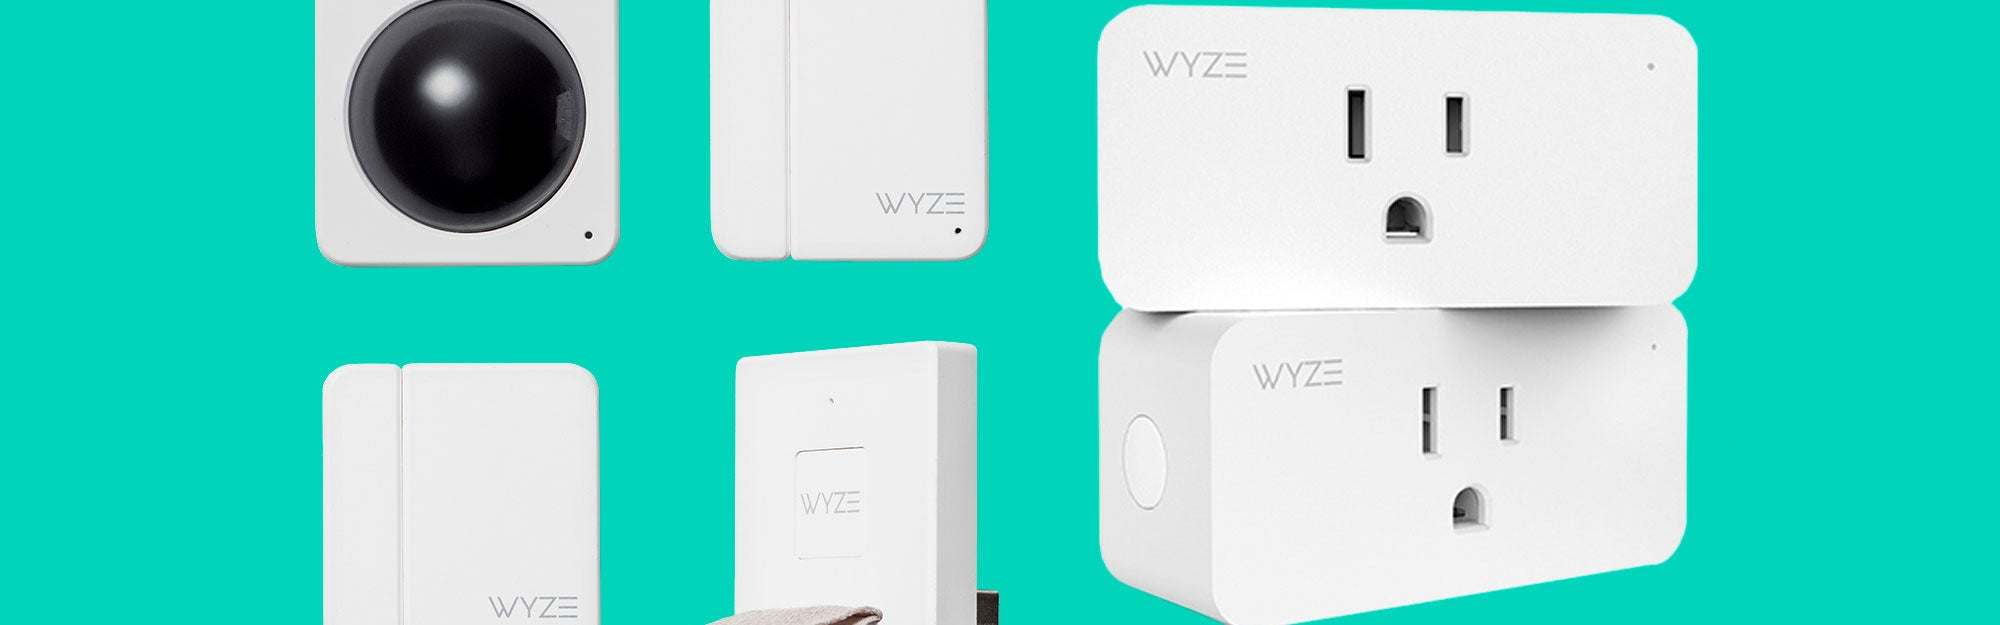 New Wyze Plug Represents an Easy, Affordable Way to Start a Smart Home